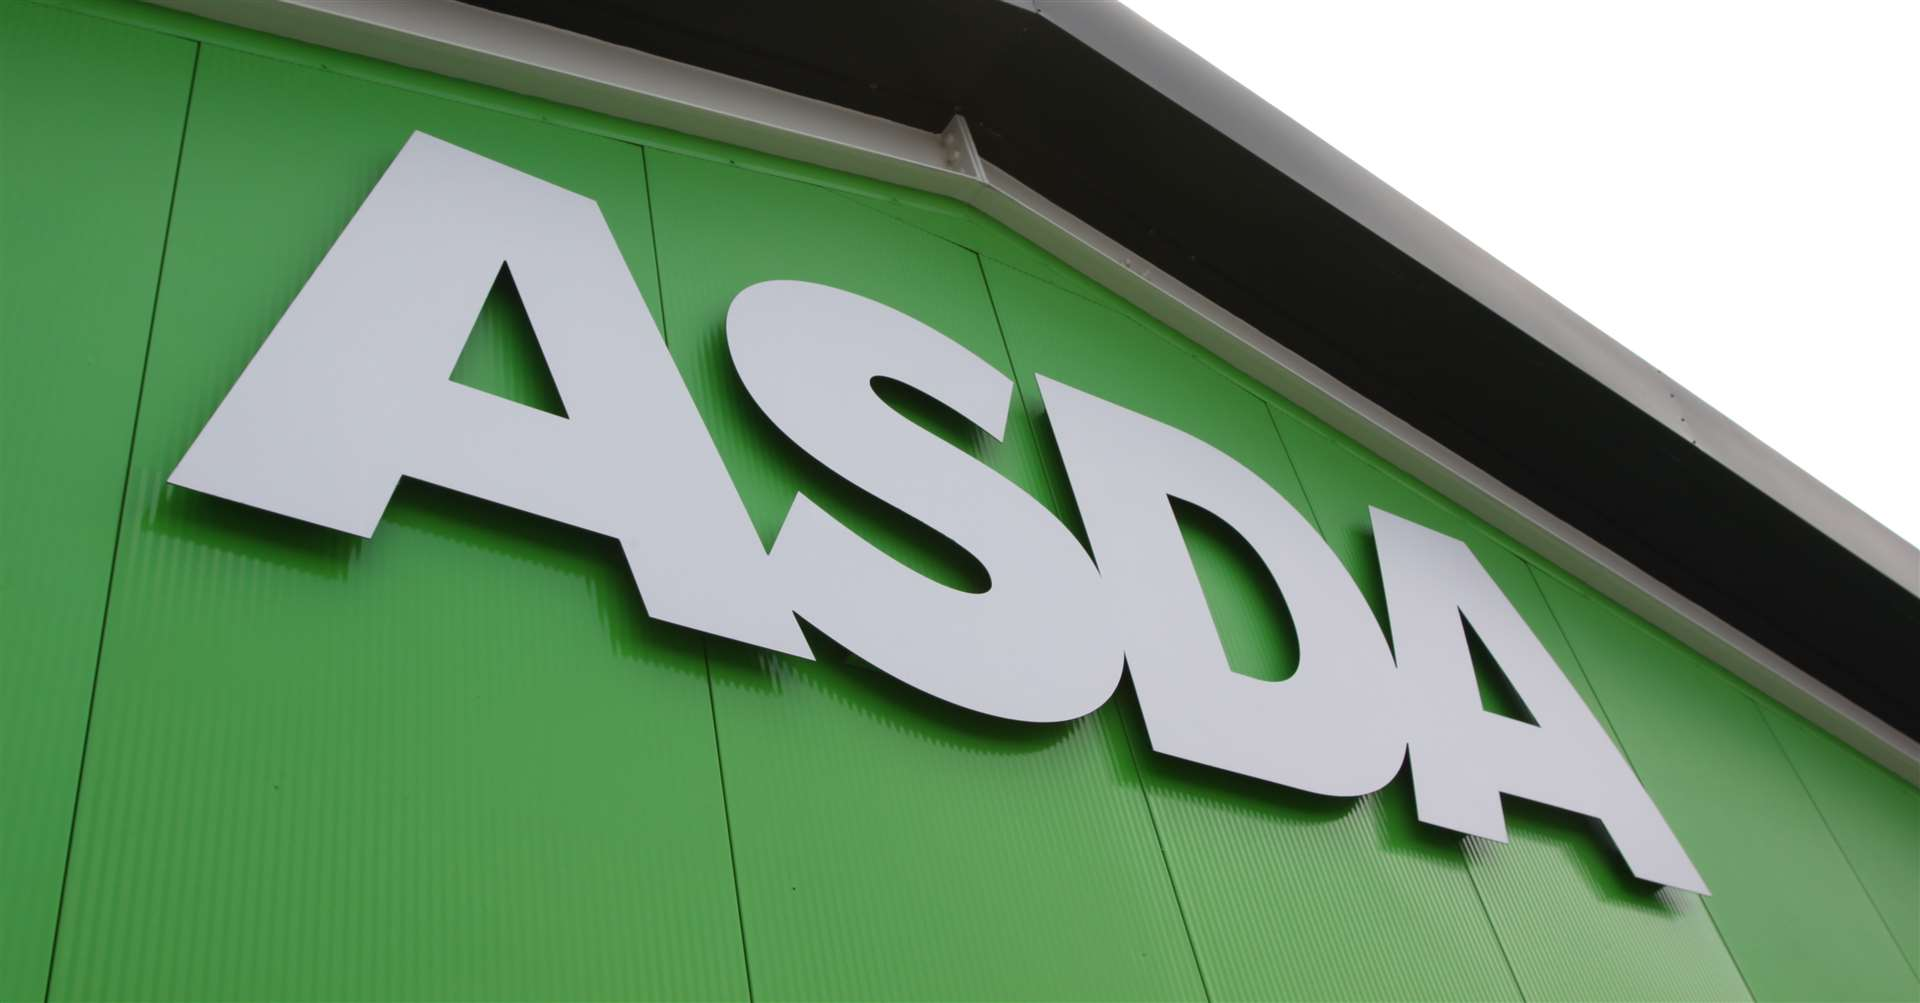 asda easter opening times 2019